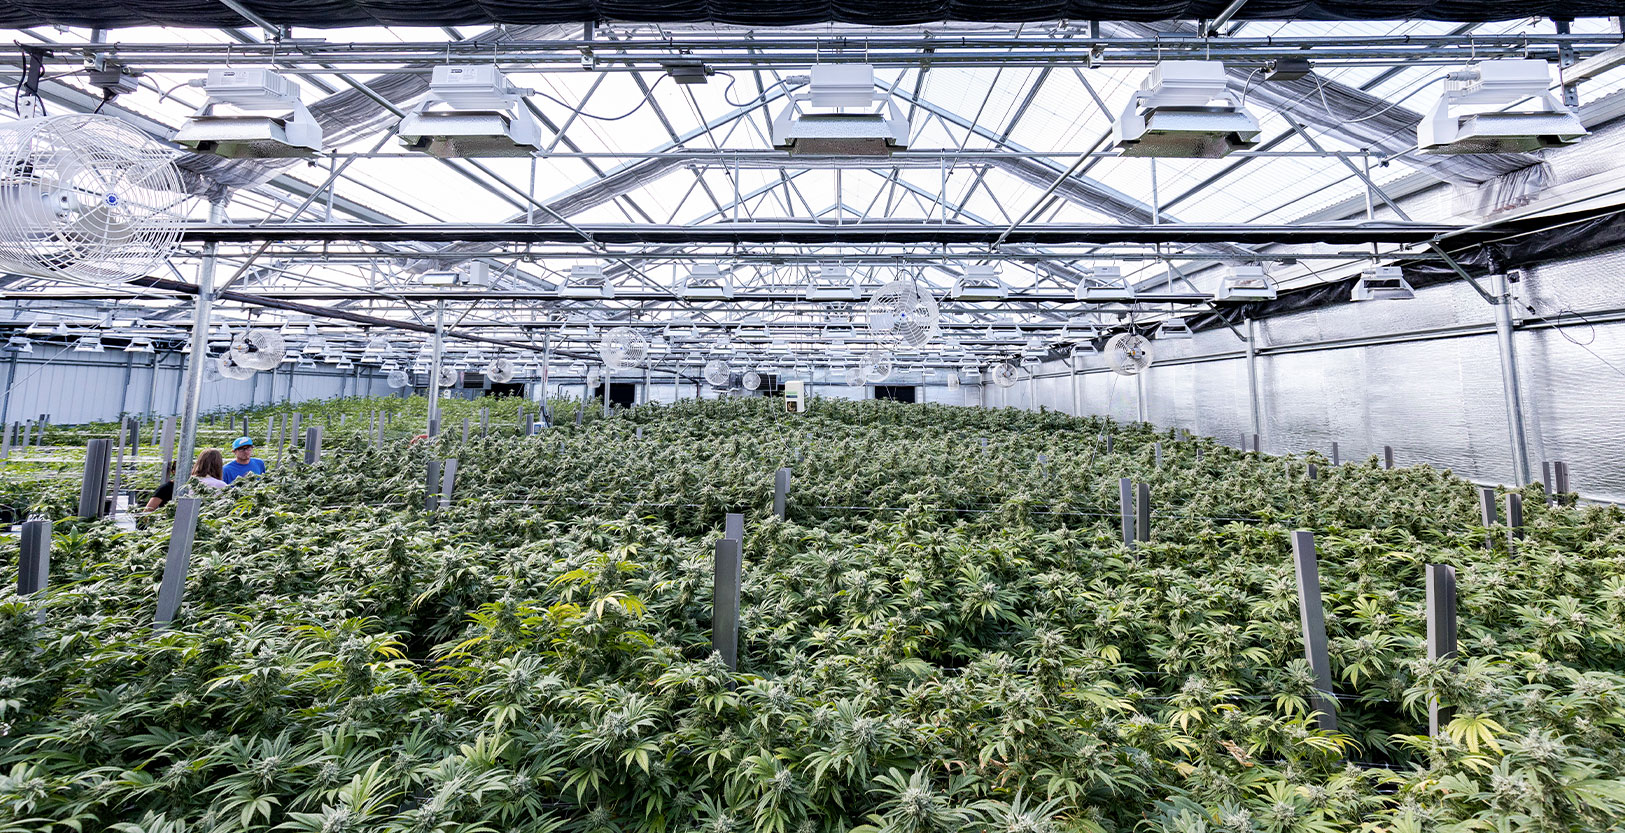 Capital Cannabis Farm - Willamette Valley, OR